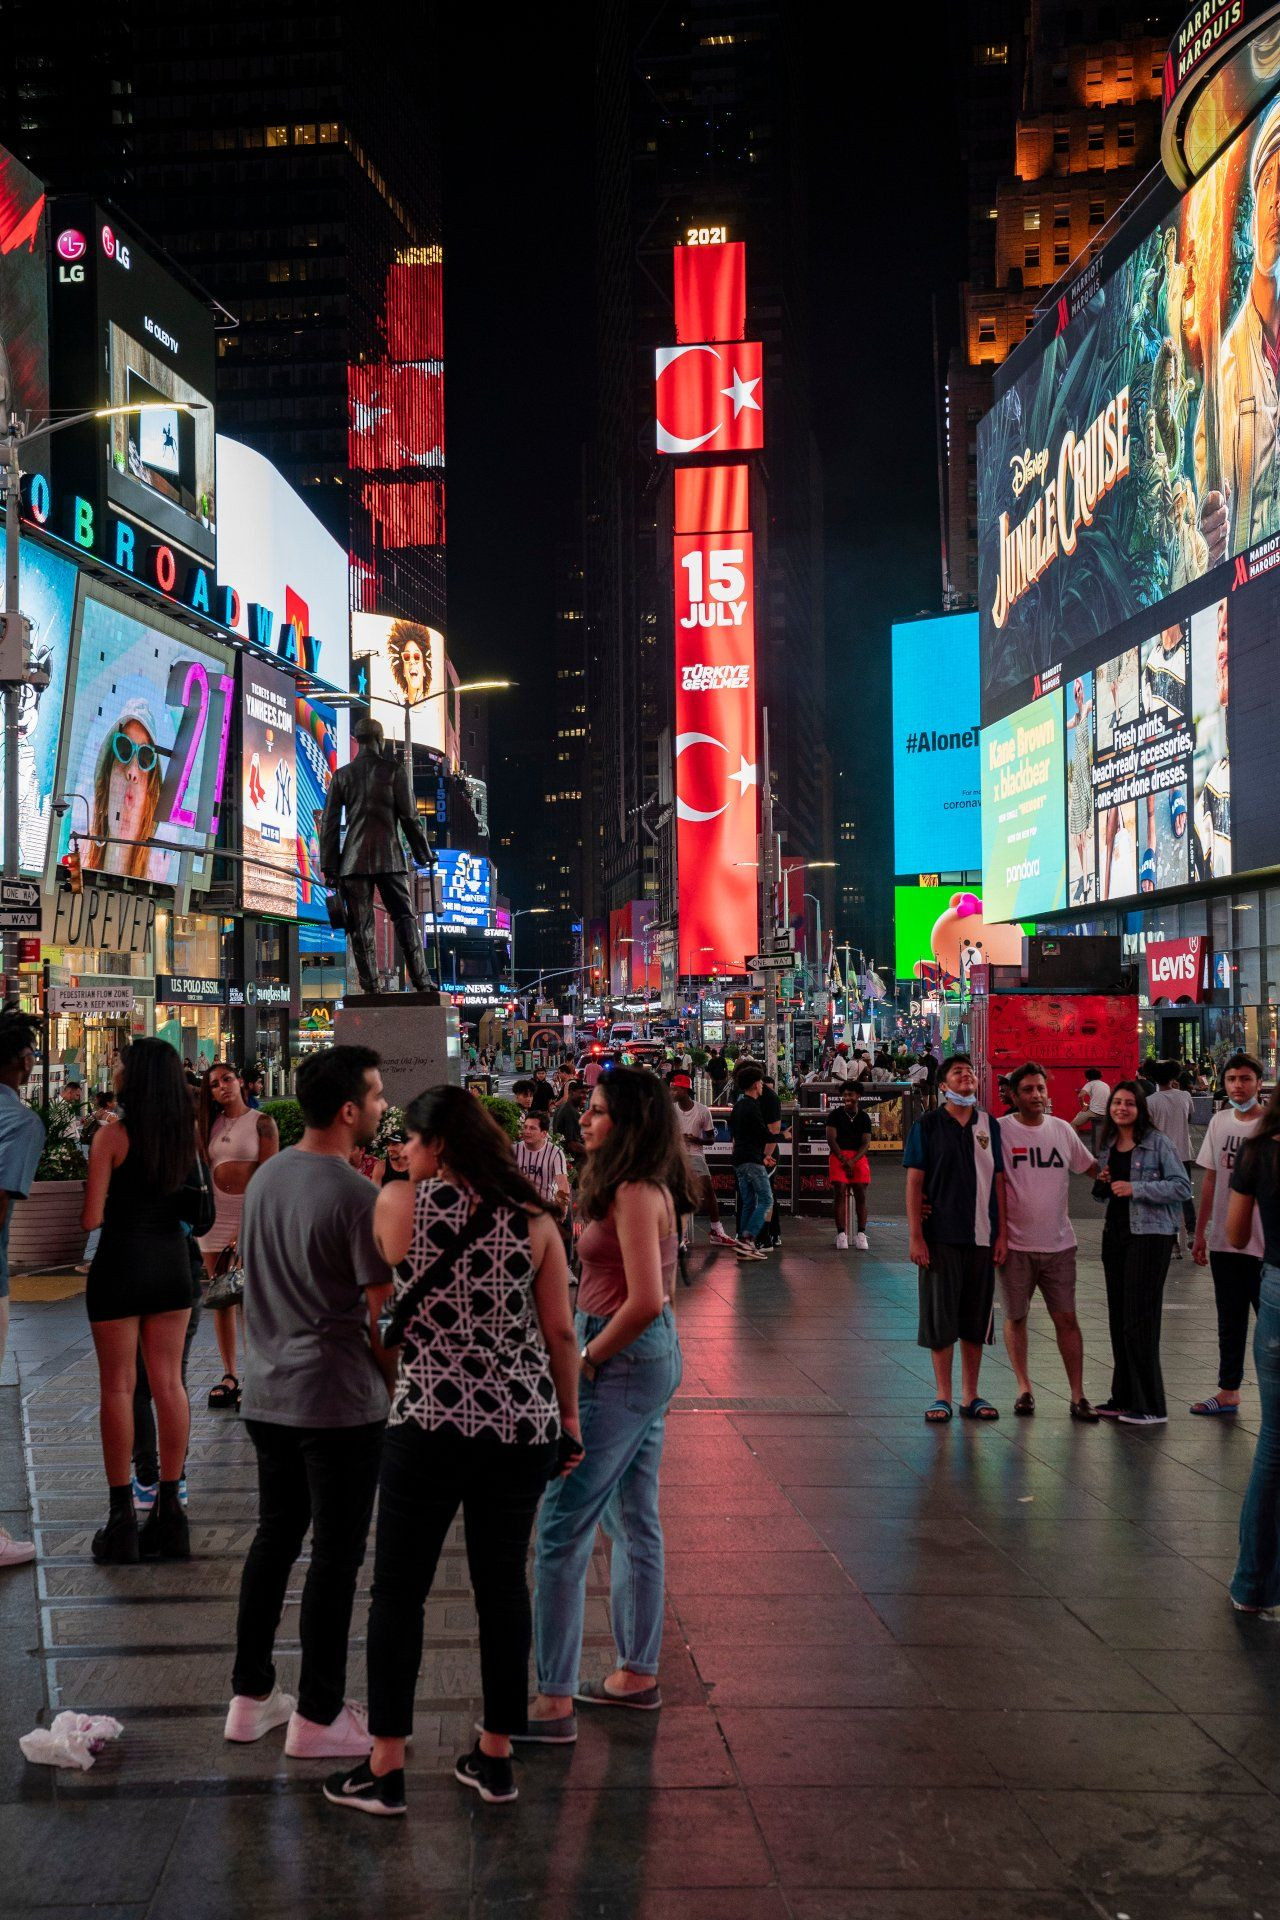 Turkey airs messages on Times Square billboards to mark 2016 coup bid - Page 3